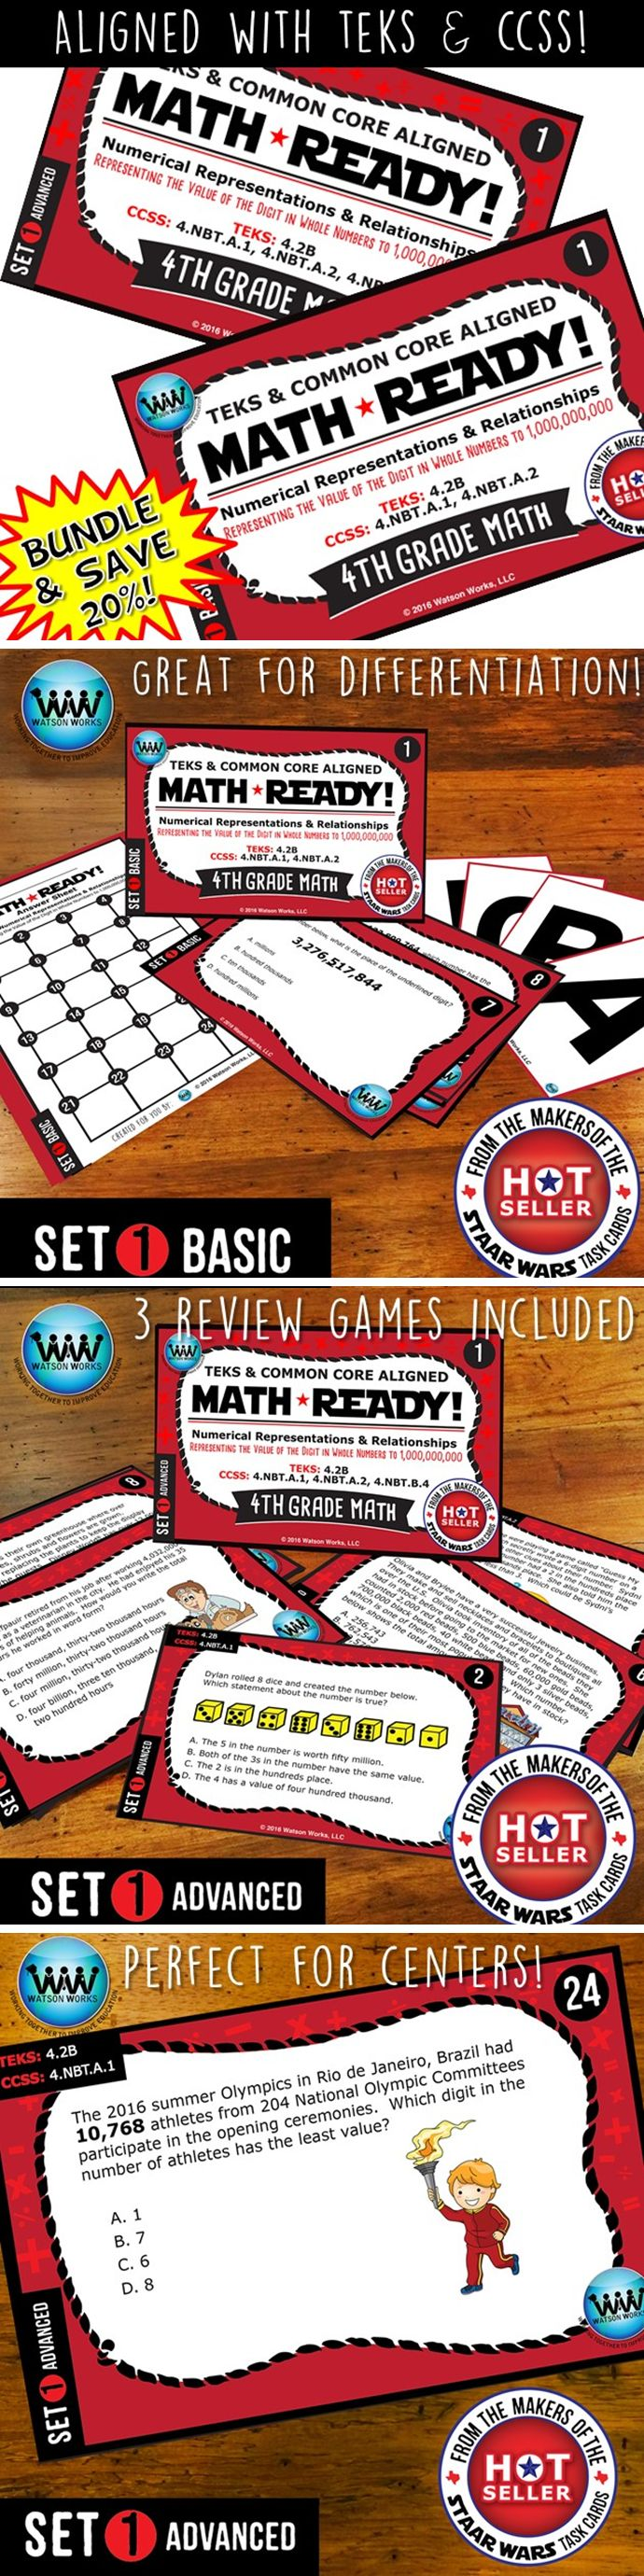 SAVE 20% WHEN YOU PURCHASE THIS BUNDLE (includes both our Basic & Advanced MATH READY Representing Value of the Digit to 1 Billion Task Cards sets)! Both sets include 24 task cards w/ multiple choice answers. The BASIC set helps your students practice & apply their understanding of place value at a simpler, basic level with shorter questions, while the ADVANCED set features rigorous, higher-level thinking questions w/ longer word problems, making them great for differentiation. $5.60